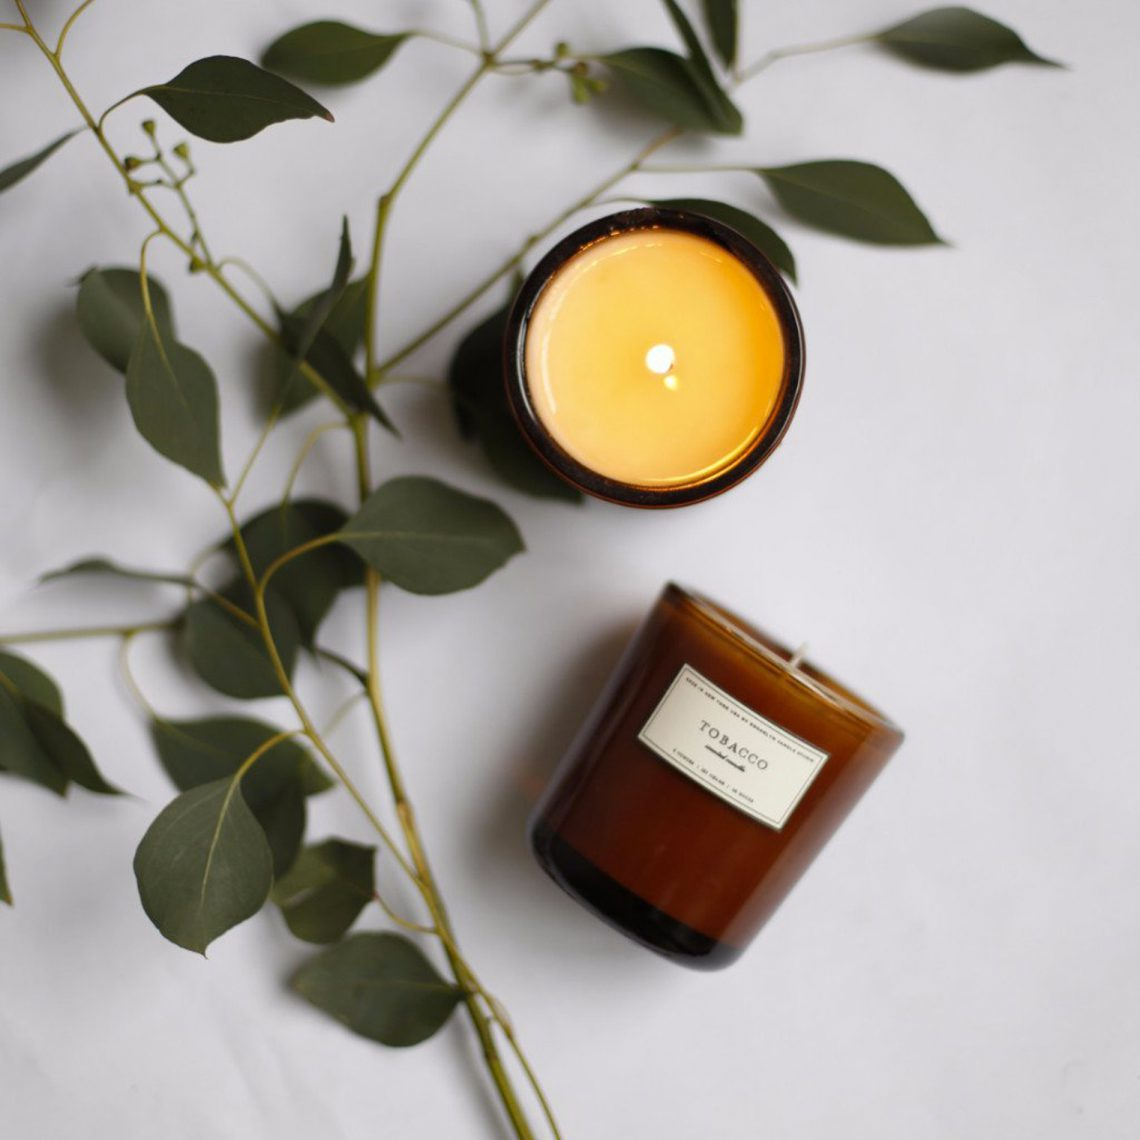 9 of the Best Scented Candles Your House is Lacking right